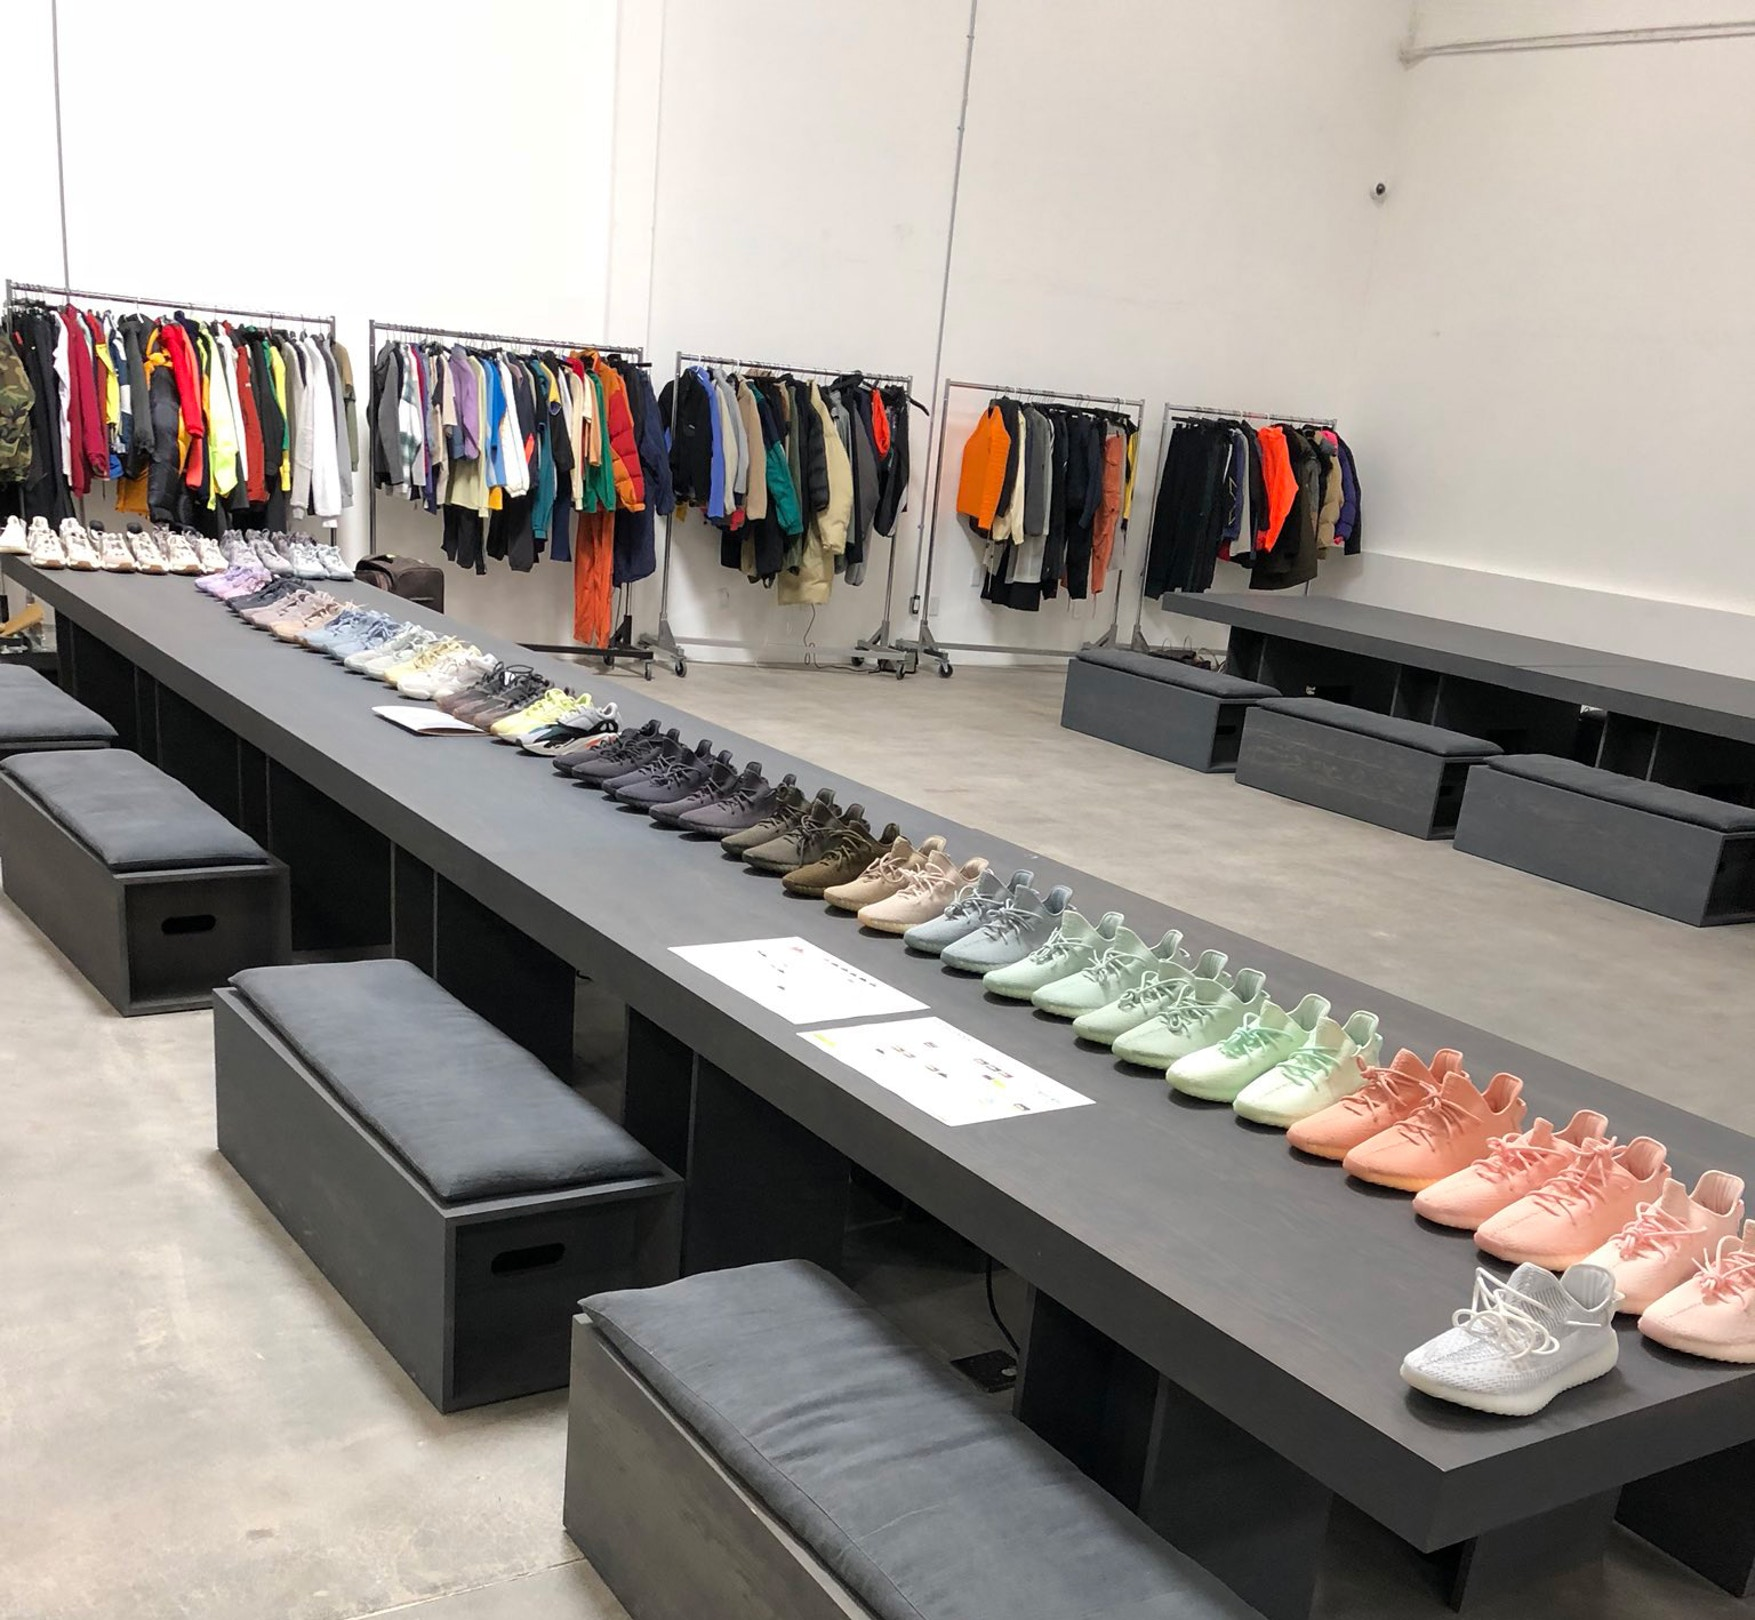 Kanye West Reveals an Array of Unseen YEEZY Sneakers